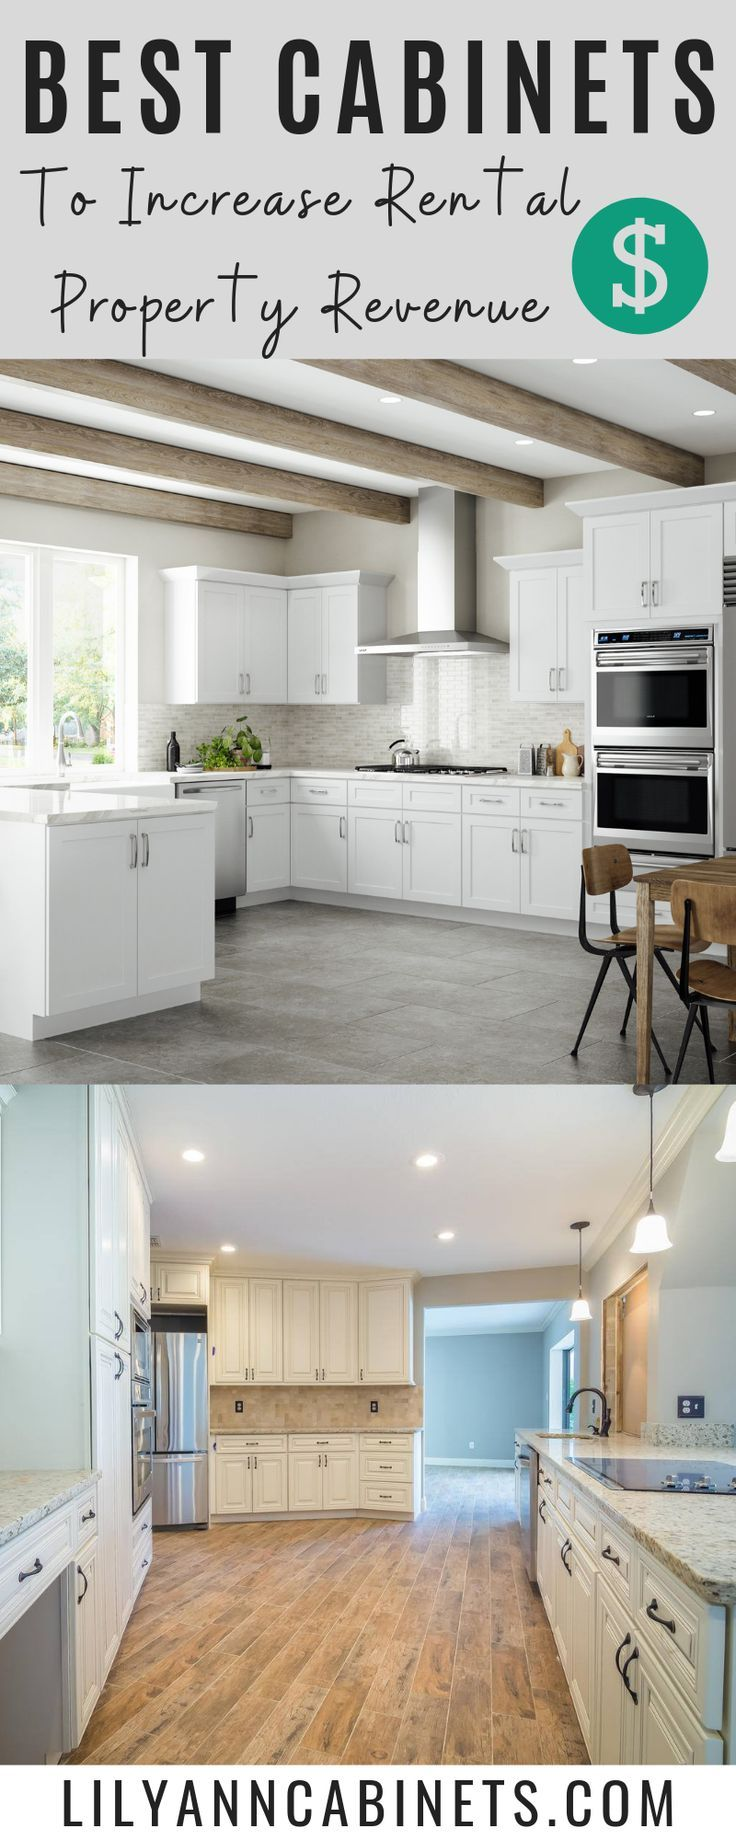 Use These Cabinets To Increase Rental Property Revenue Rental Property Investment Property Remodel Rental Kitchen